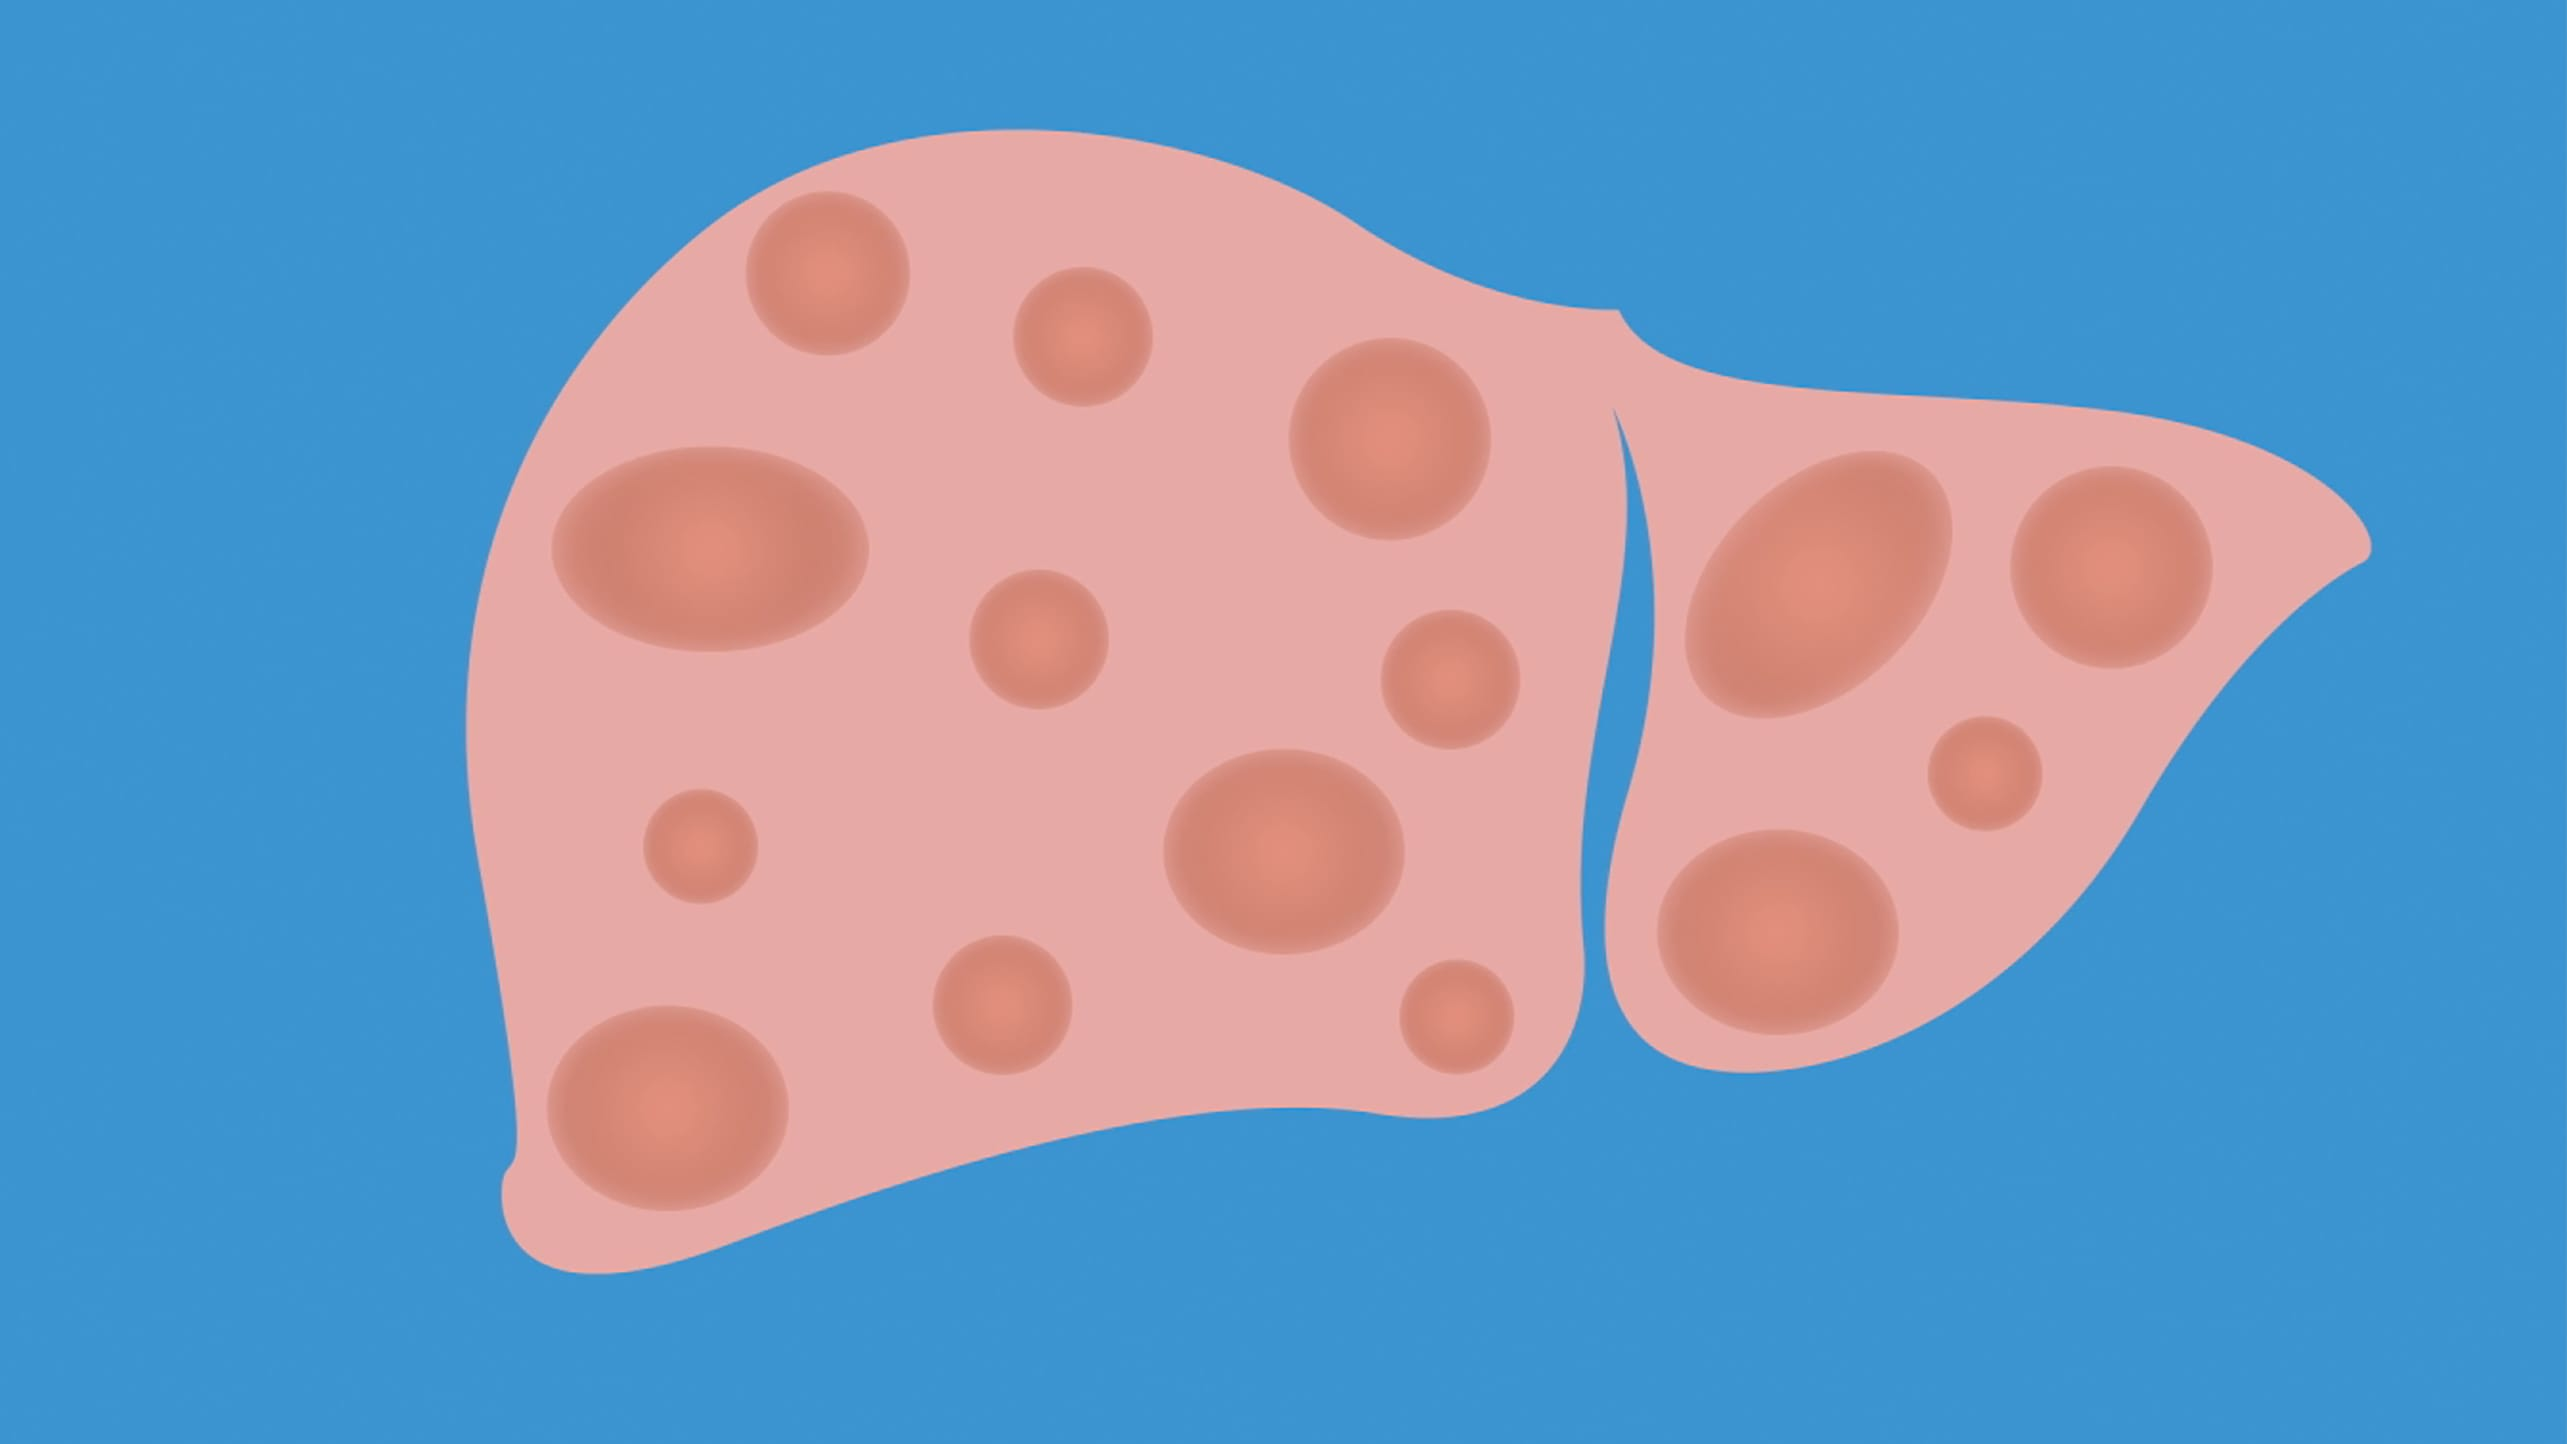 An illustration of a liver with fatty liver disease.